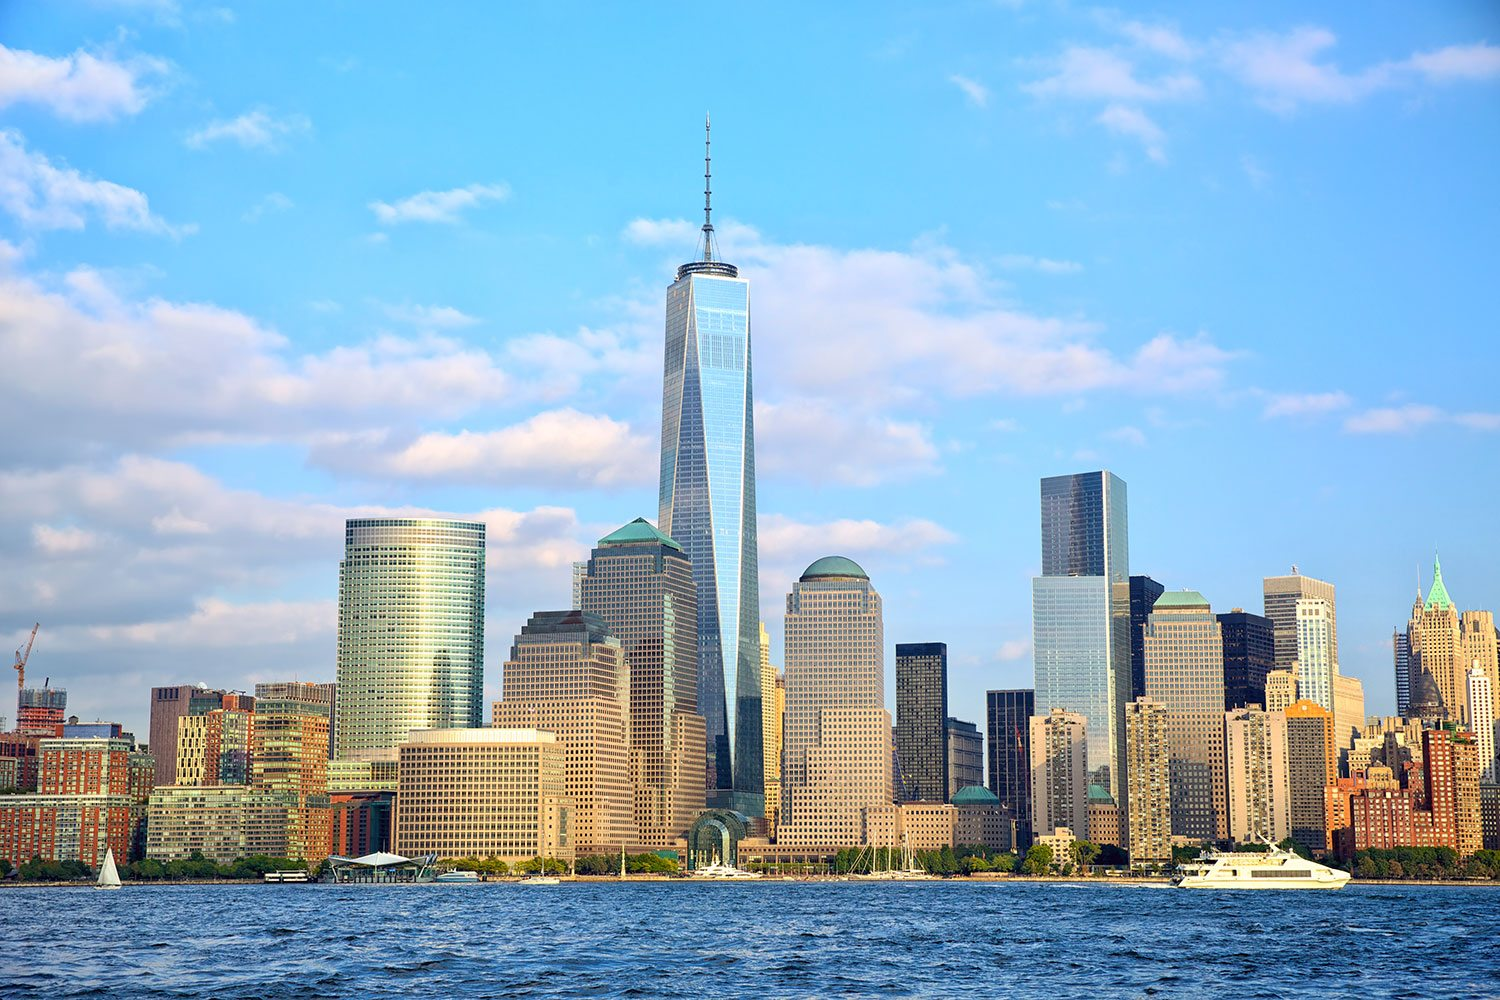 Fotomurali : Manhattan - One World Trade Center